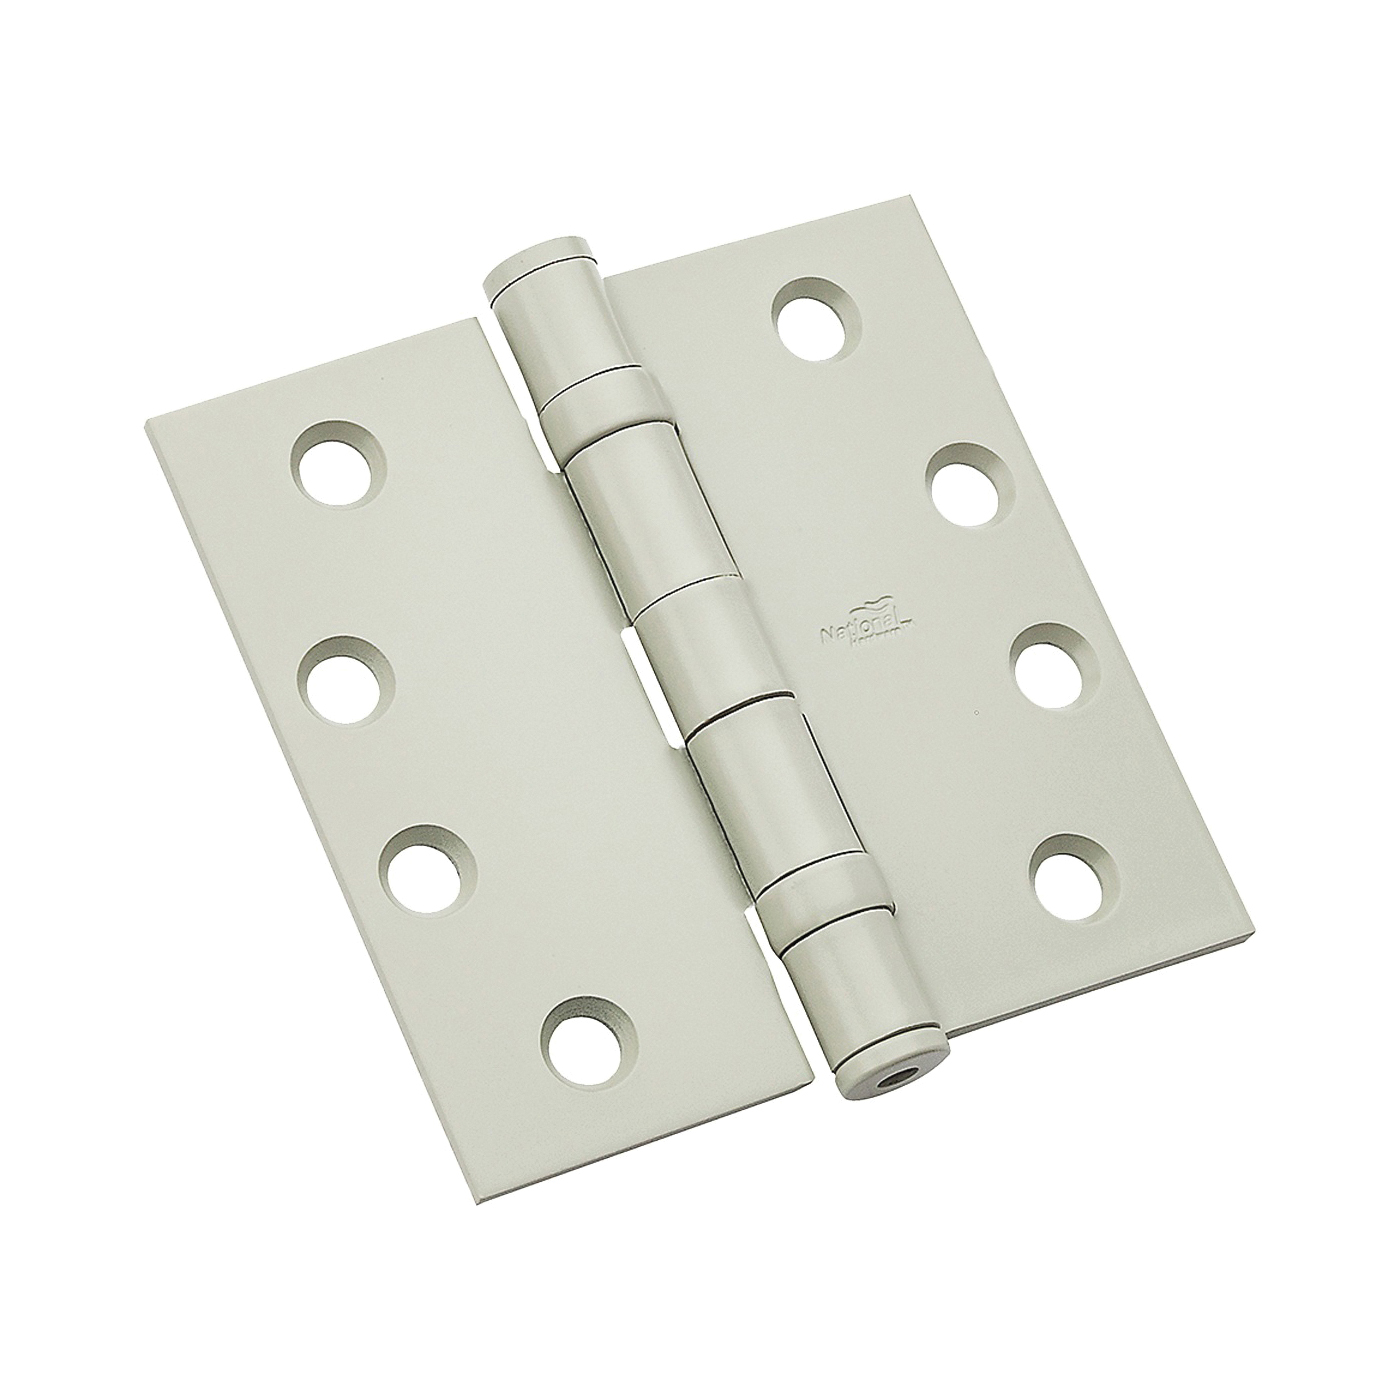 Picture of National Hardware 179 Series N236-104 Ball Bearing Hinge, 4-1/2 in H Frame Leaf, Steel, Prime Coat, Screw Mounting